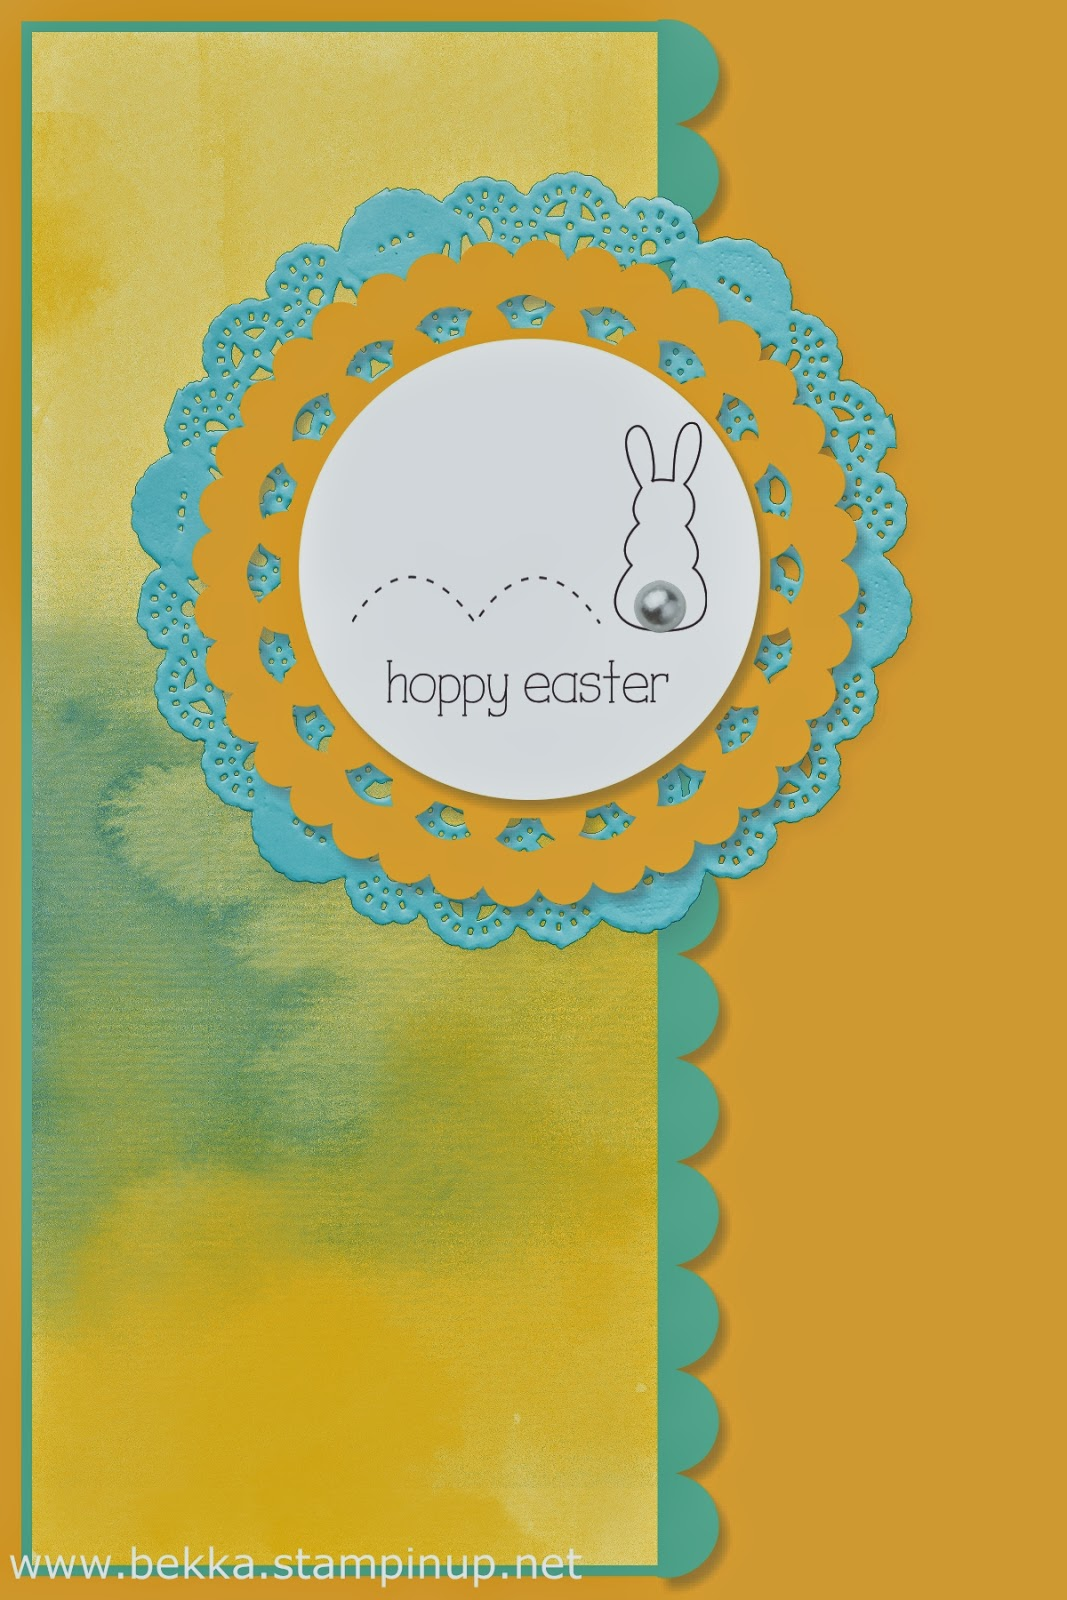 Hoppy Easter Digital Card using Stampin' Up! Products - check out this UK blog for new digital ideas every Monday